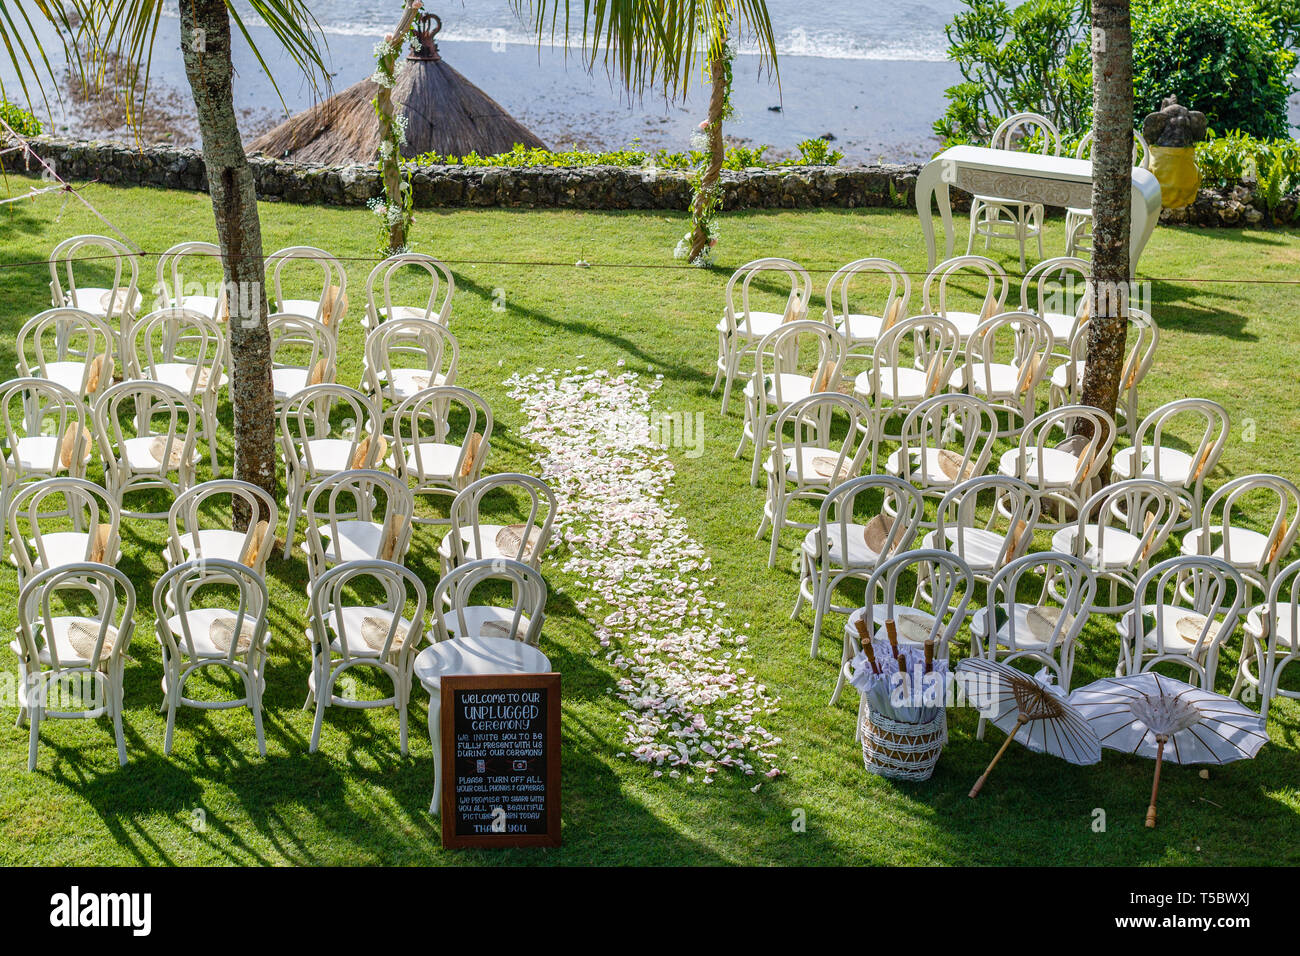 Wedding arch, chairs and umbrellas for guests among palm trees near the ocean. Blackboard sign saying to turn cell phones off for unplugged ceremony. - Stock Image